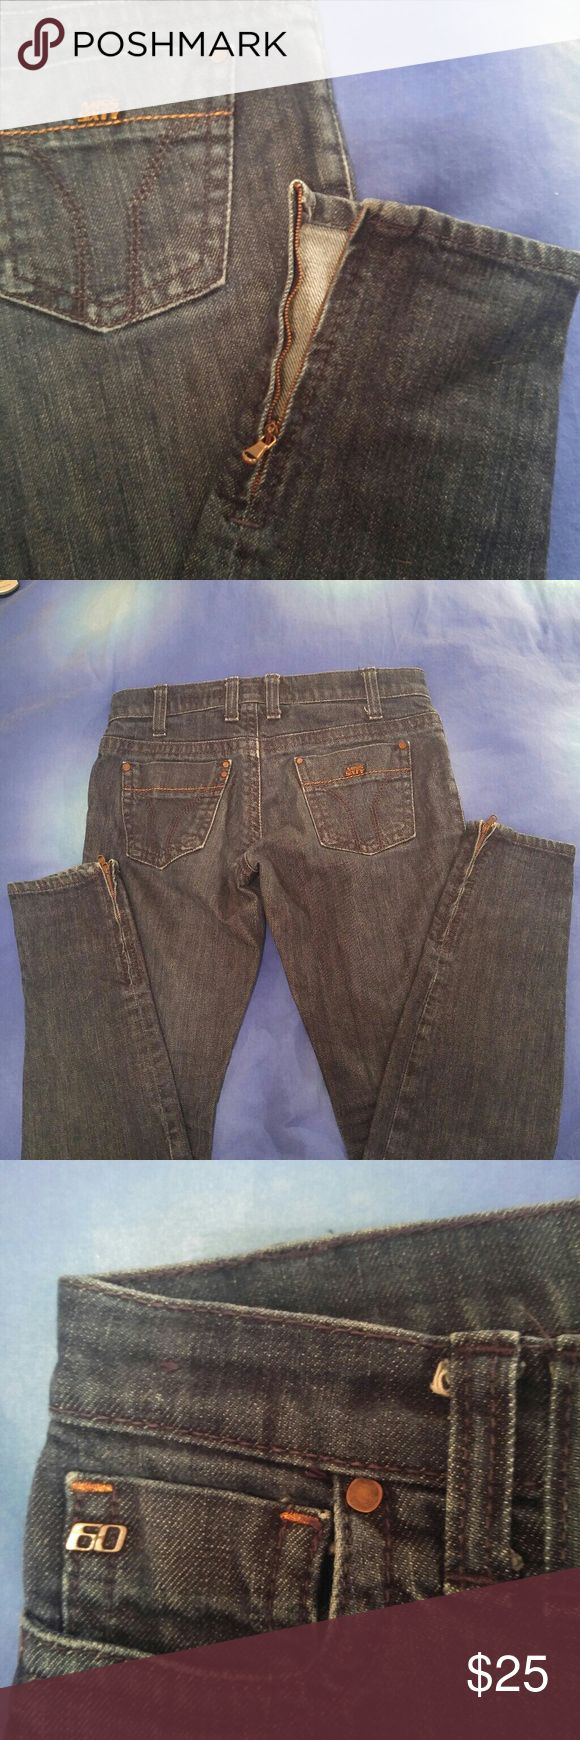 Miss Sixty jeans Size 27 by Miss Sixty. Zippers on the bottom. Logo detail on back pocket. Used but like new condition. Miss Sixty Jeans Skinny